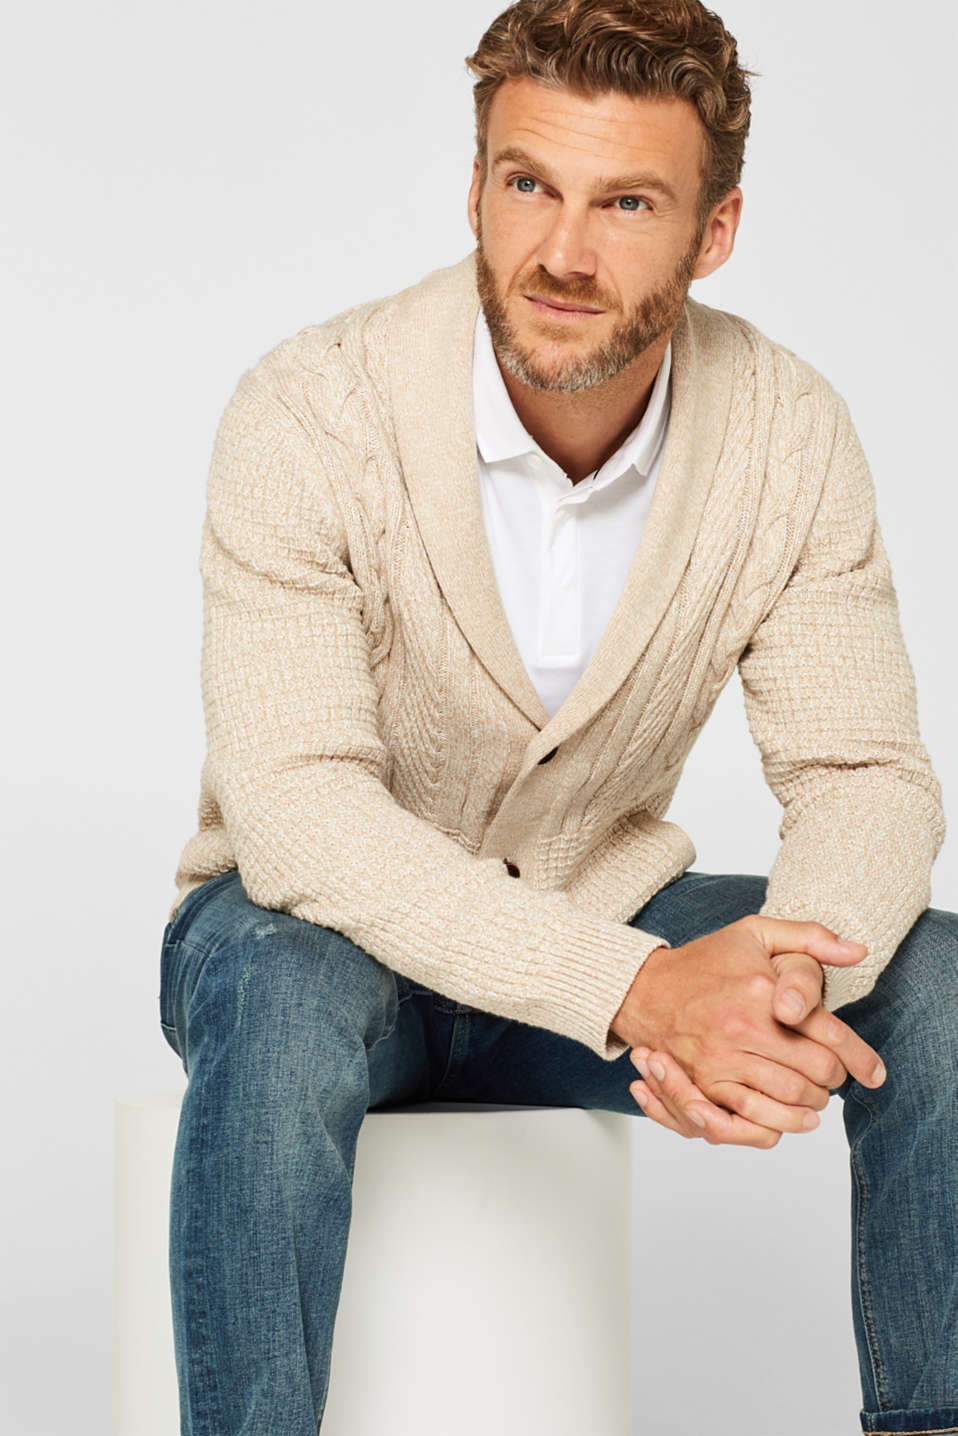 Esprit - Cardigan with a mix of textures, 100% cotton